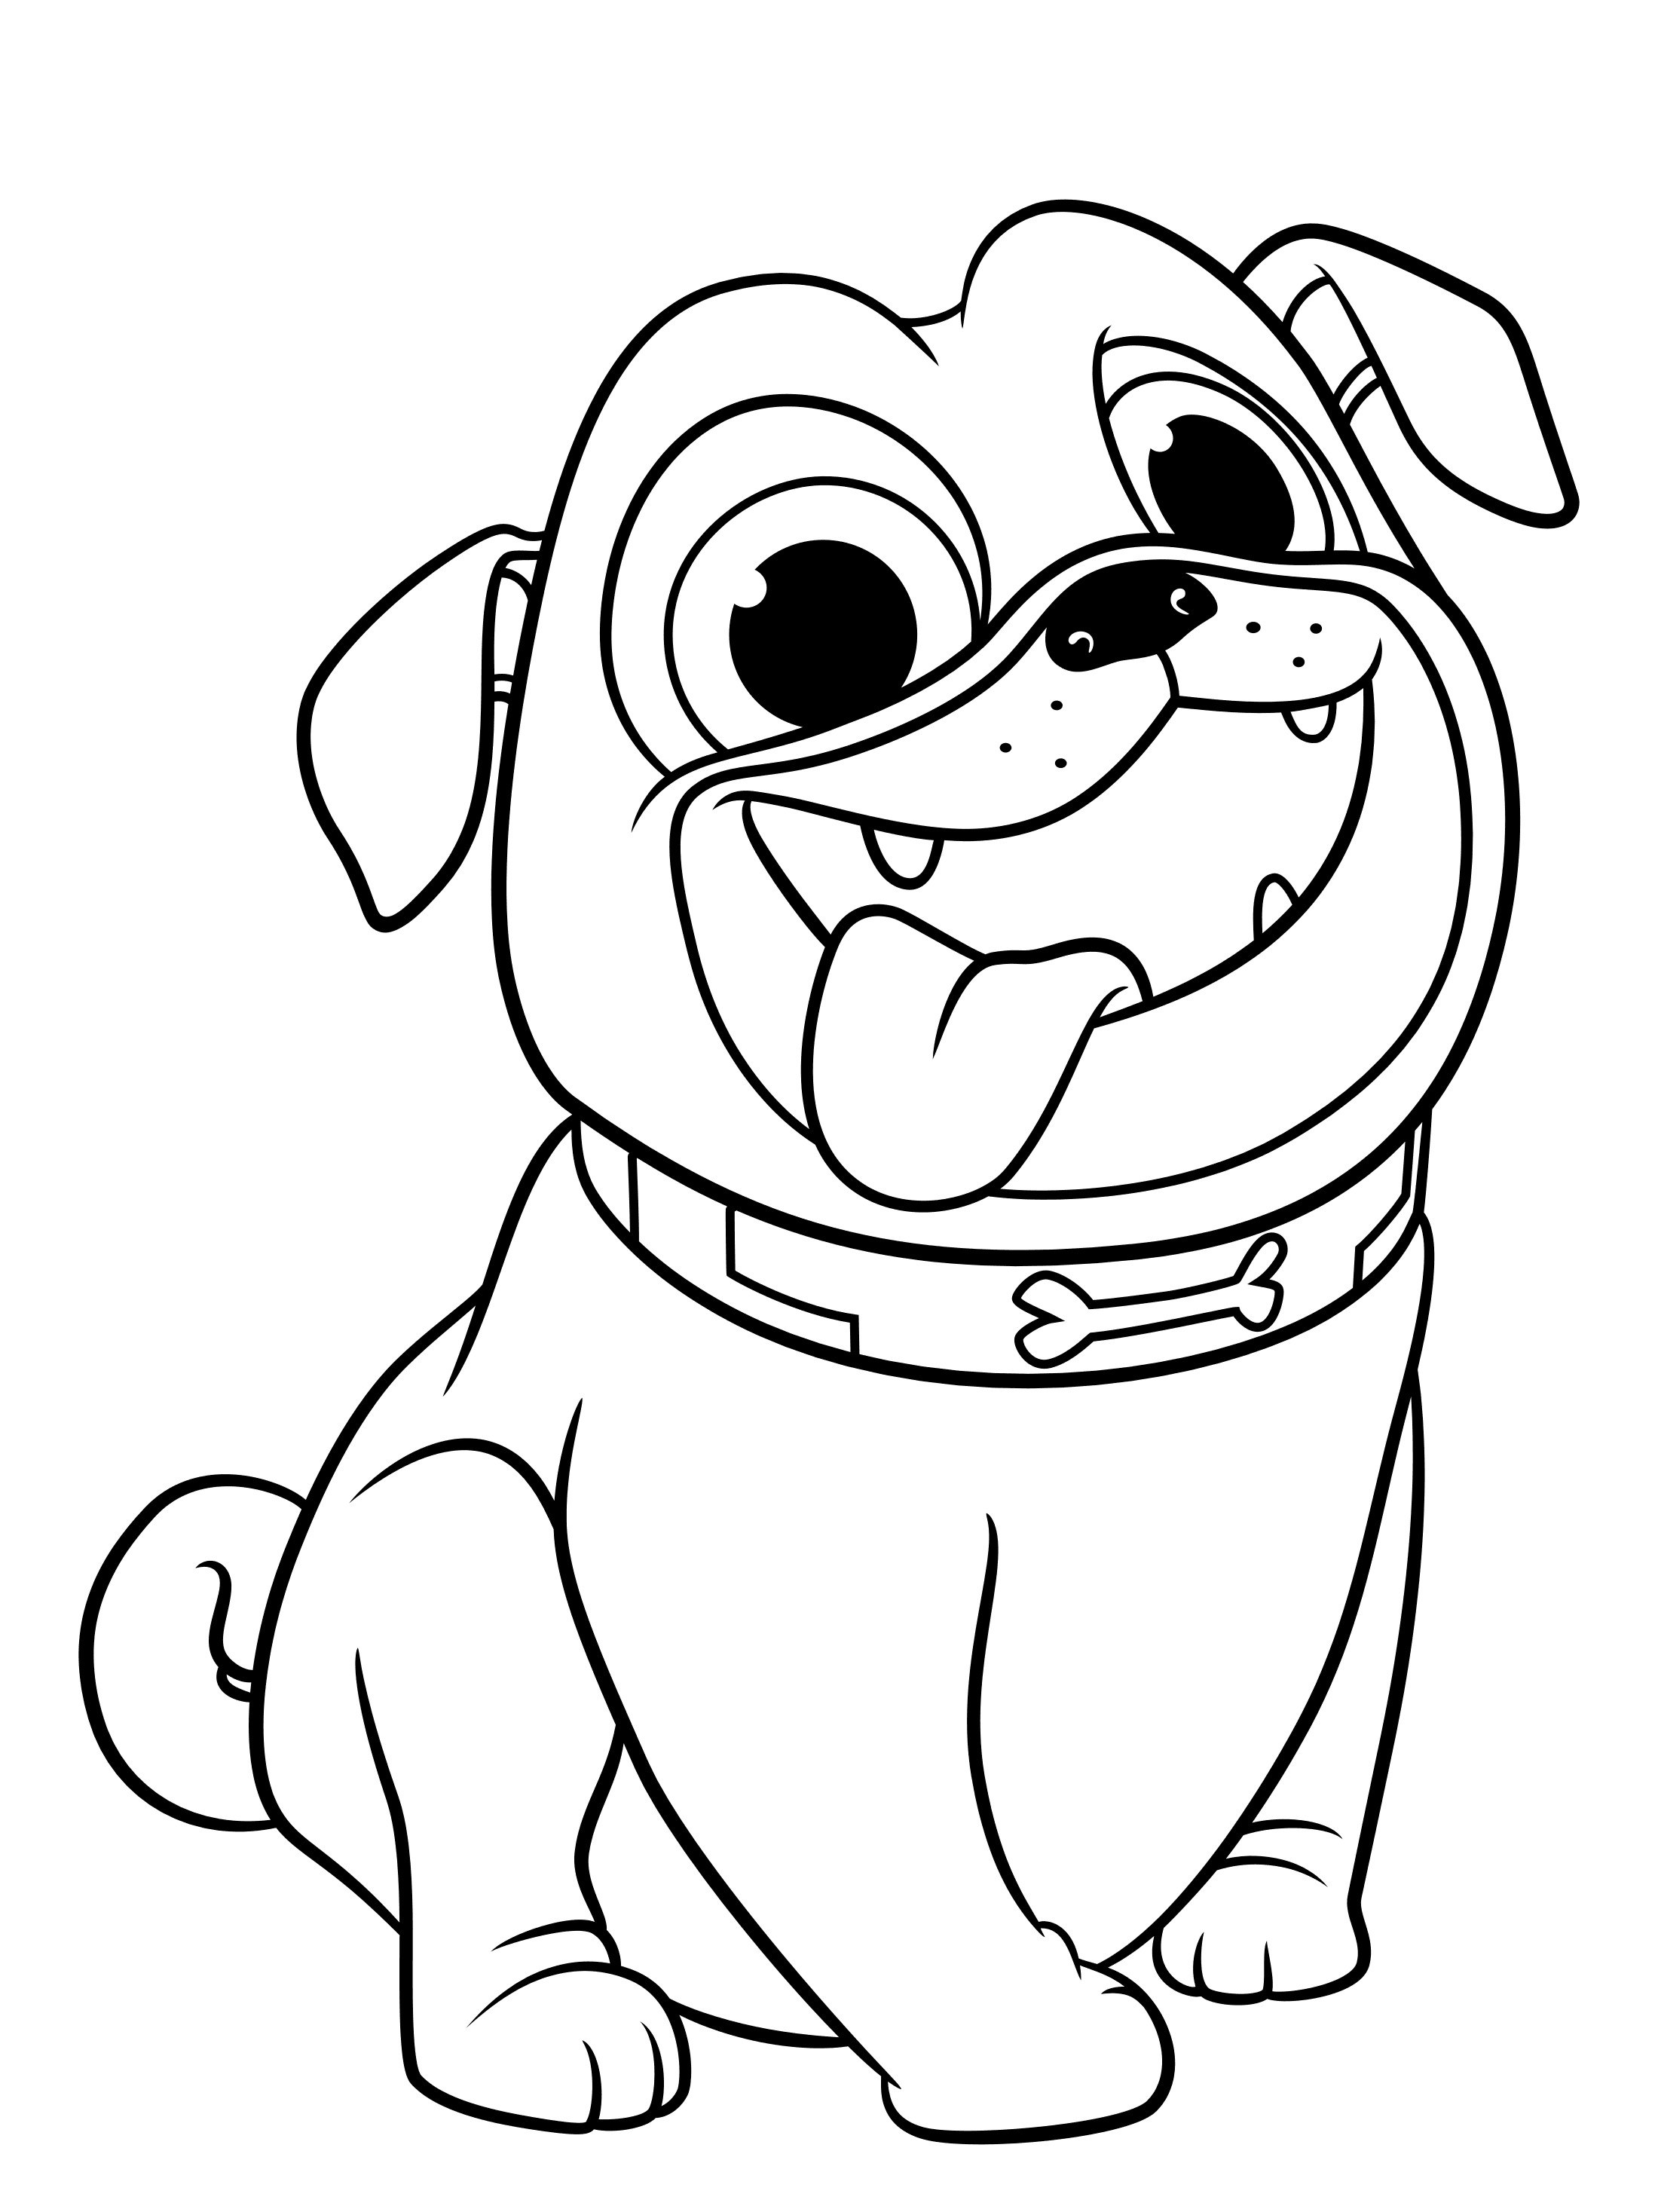 Puppy Dog Pals coloring pages to download and print for free